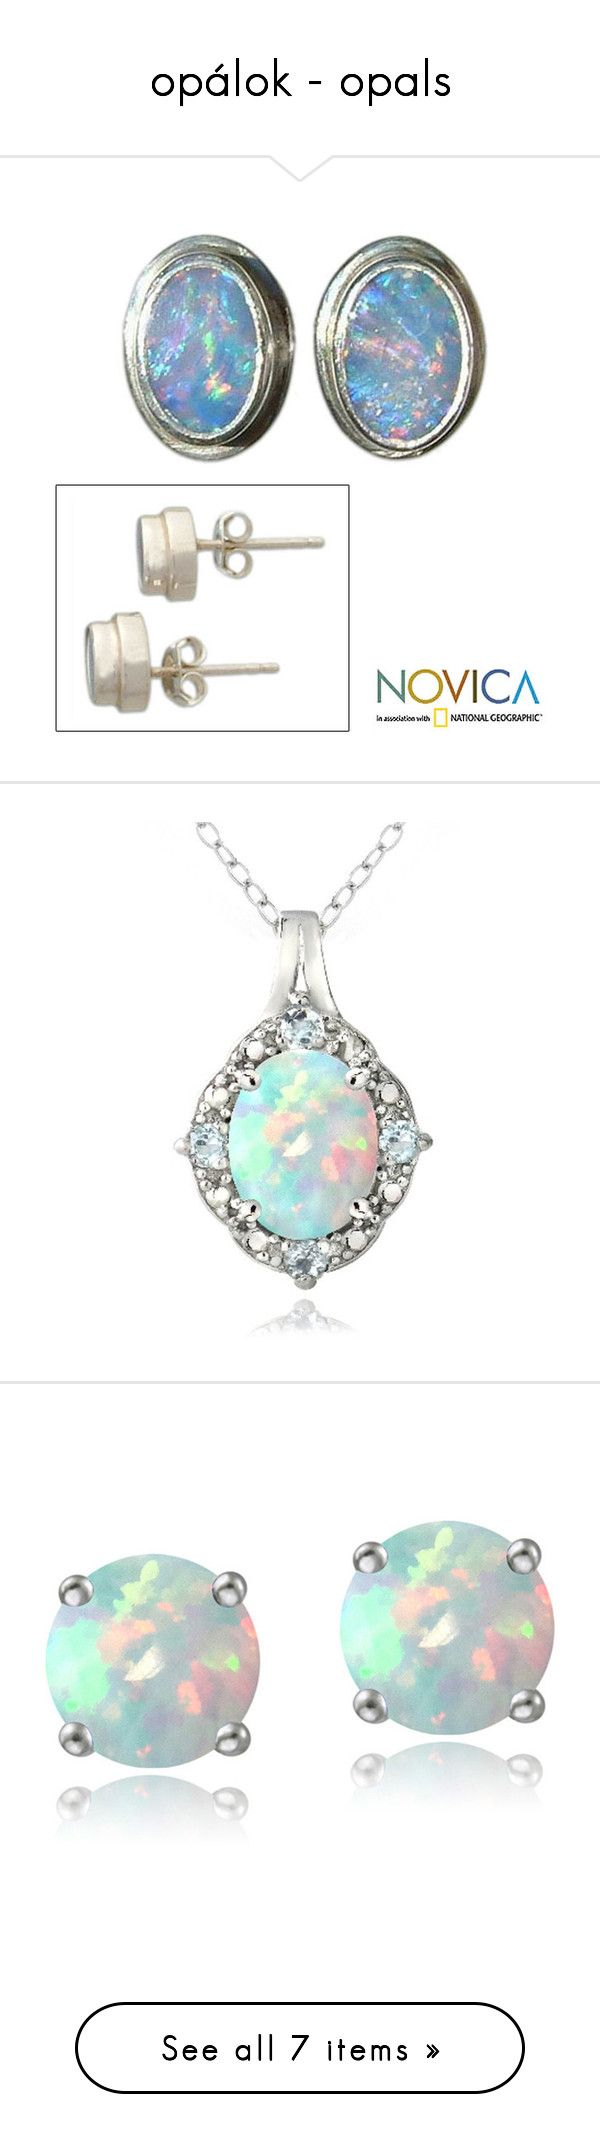 opálok - opals by szabo-csilla on Polyvore featuring jewelry, earrings, opal, stud, sterling silver jewelry, hand crafted earrings, opal jewelry, novica jewelry, opal earrings and necklaces